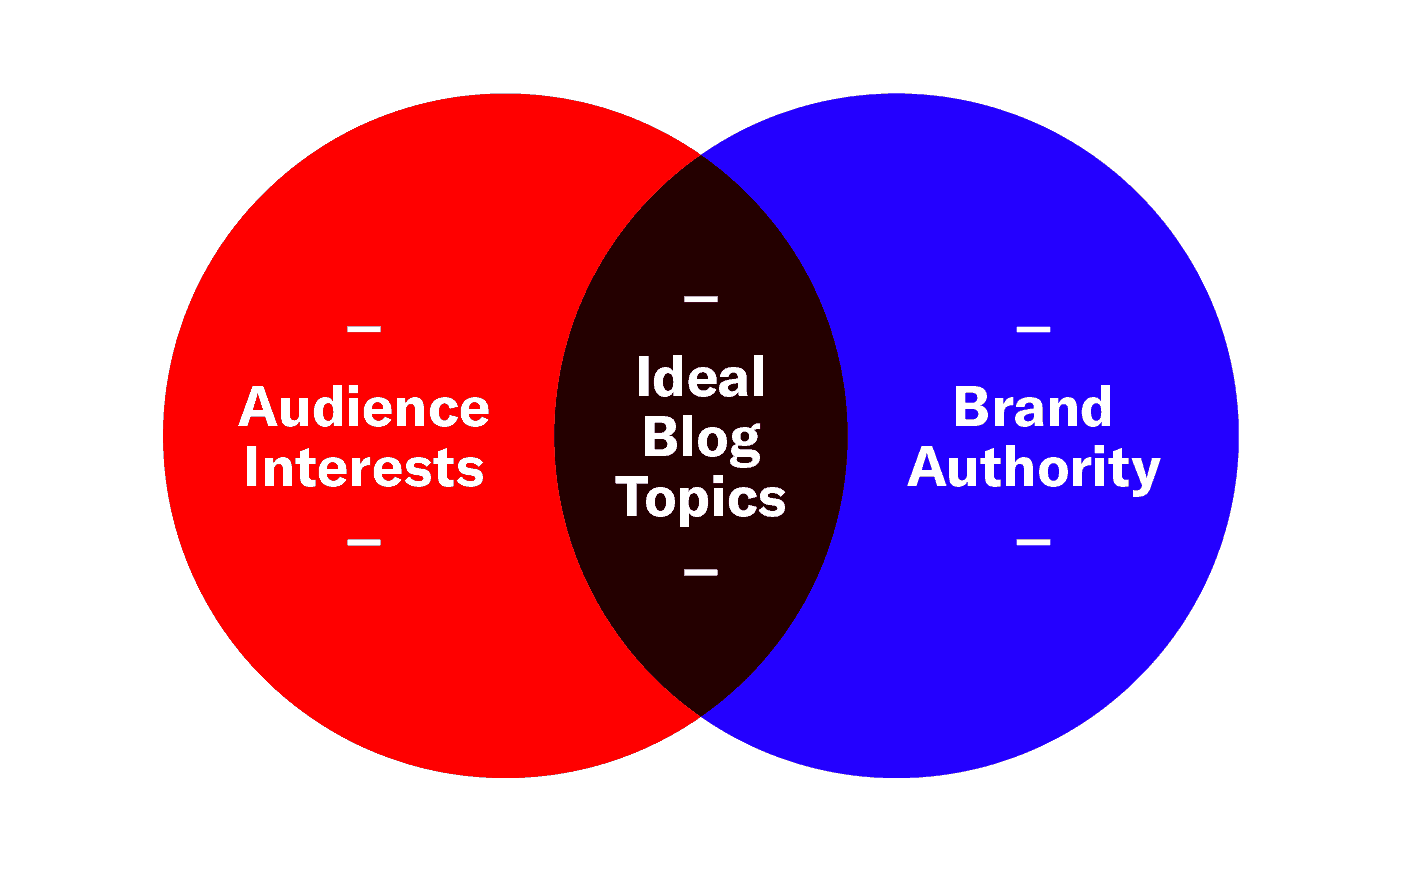 Ideal blog topics can be found where audience interests and brand authority overlap.